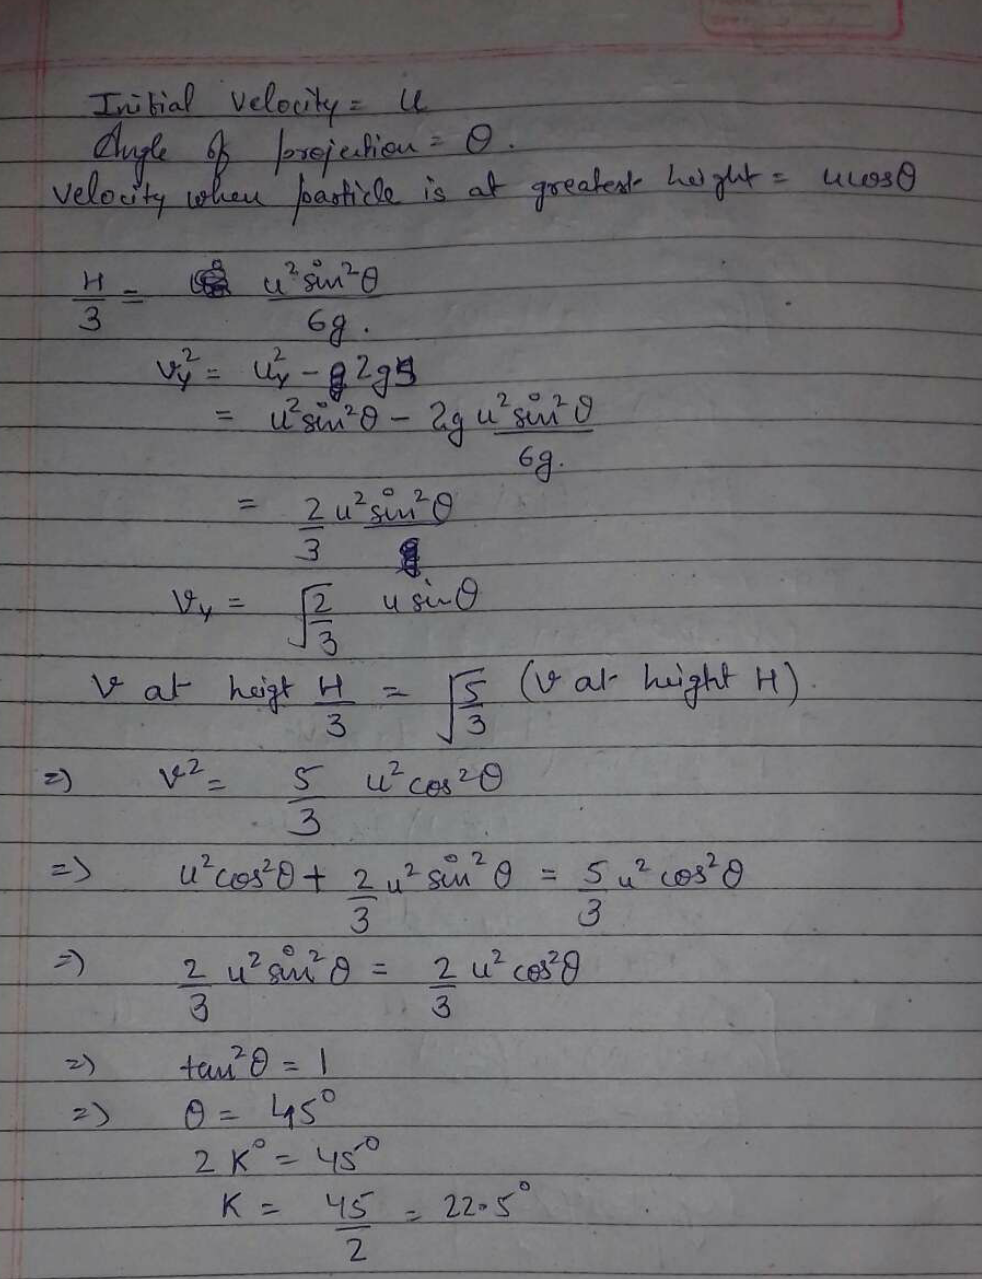 A particle is projected from the ground at an angle with the horizontal. The velocity of the projectile when it is at the greatest height is √3/5 times when it is a